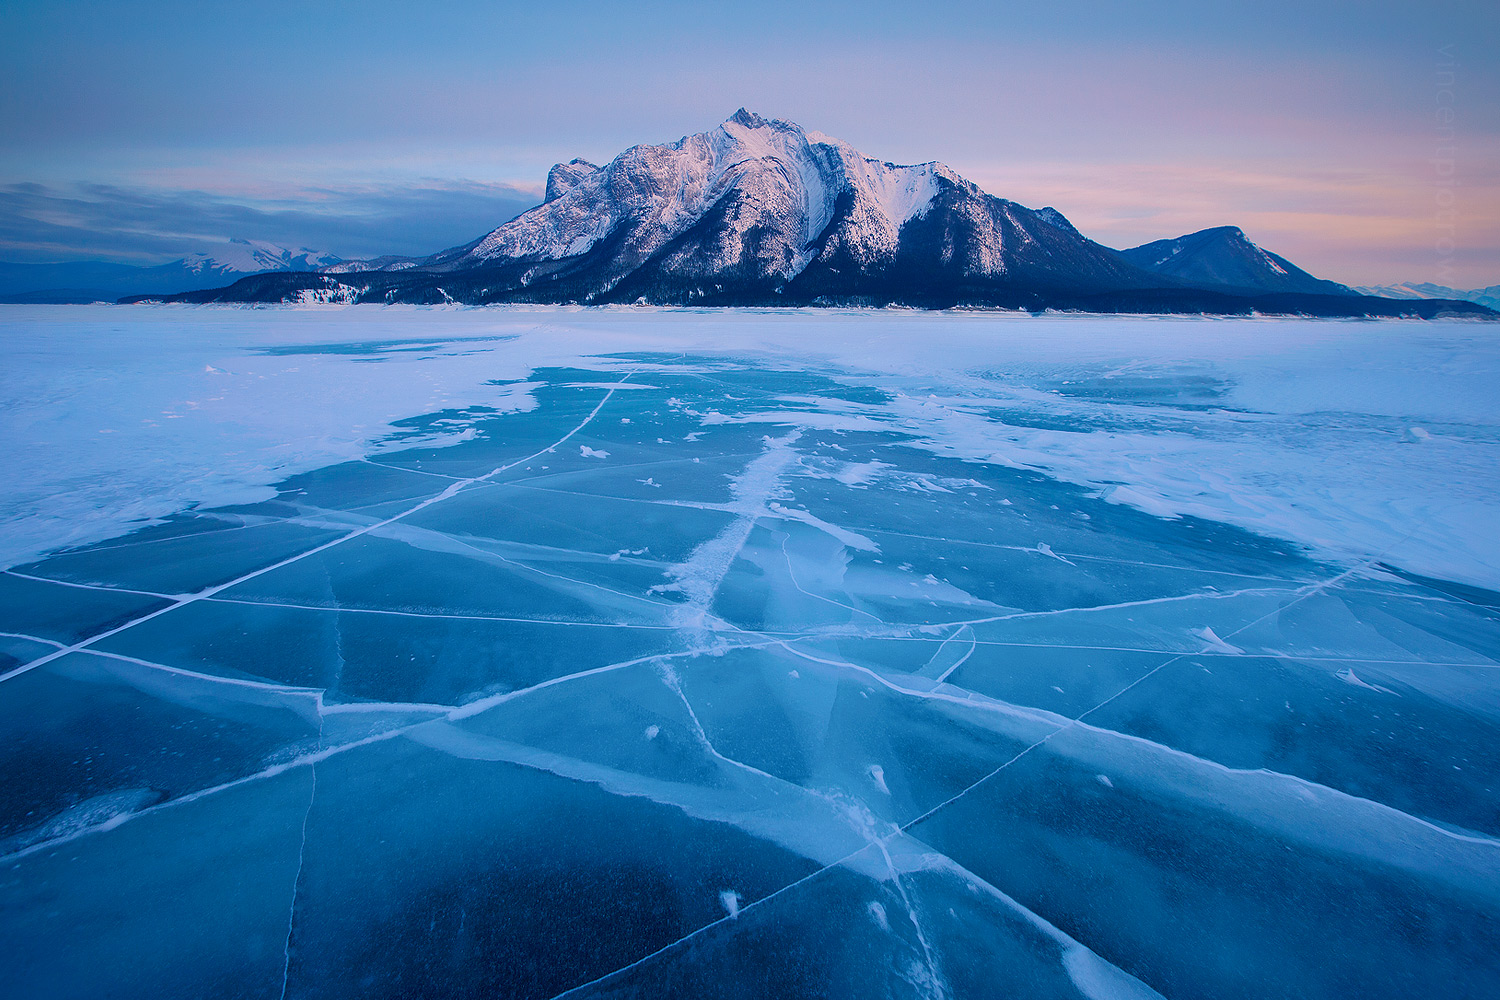 A shot of Abraham Lake in the winter with giant cracks in the blue ice leading up to a mountain.